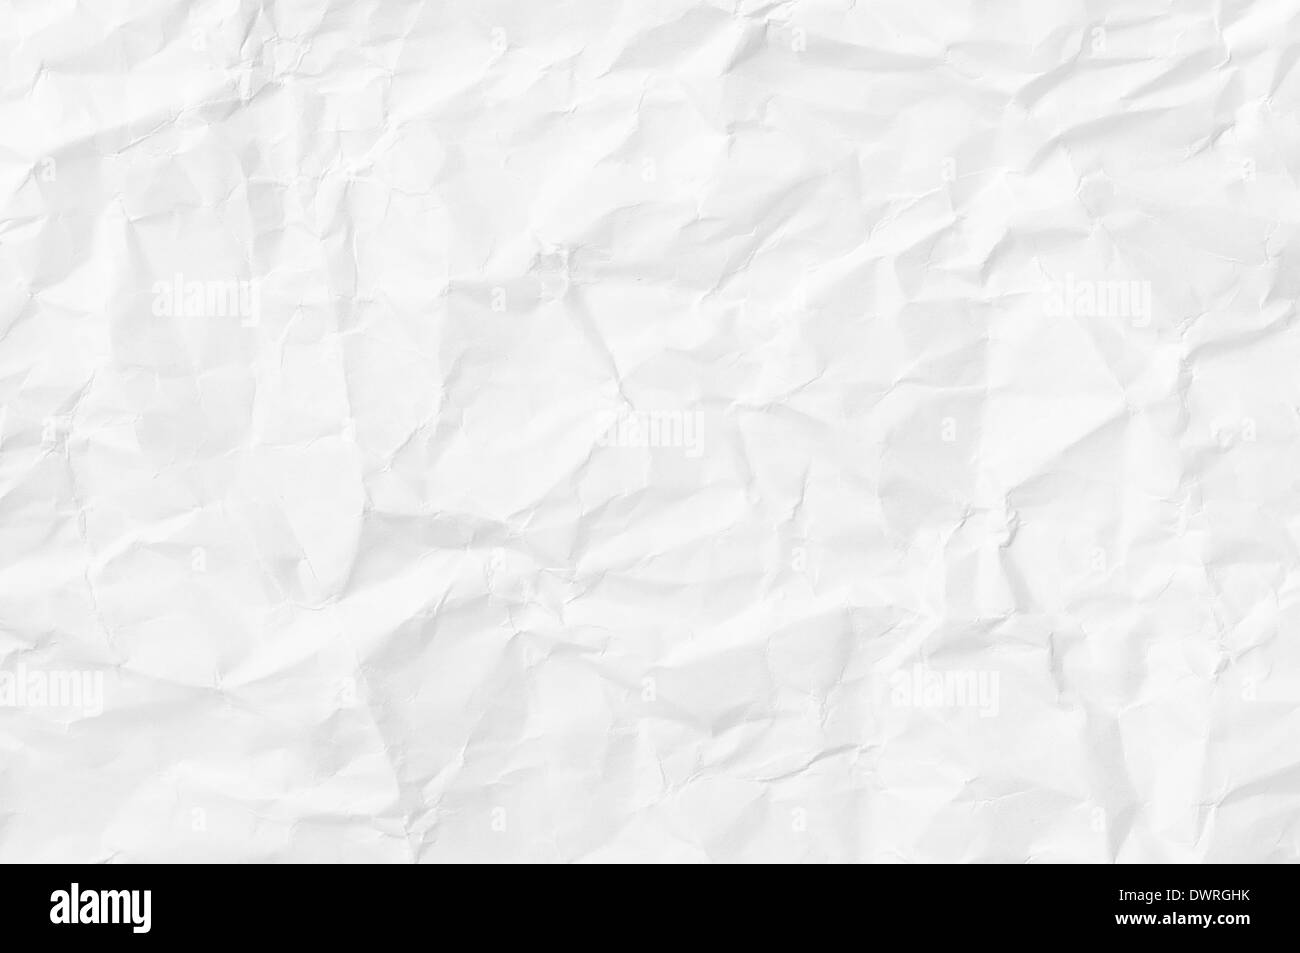 background with wrinkled paper texture - Stock Image